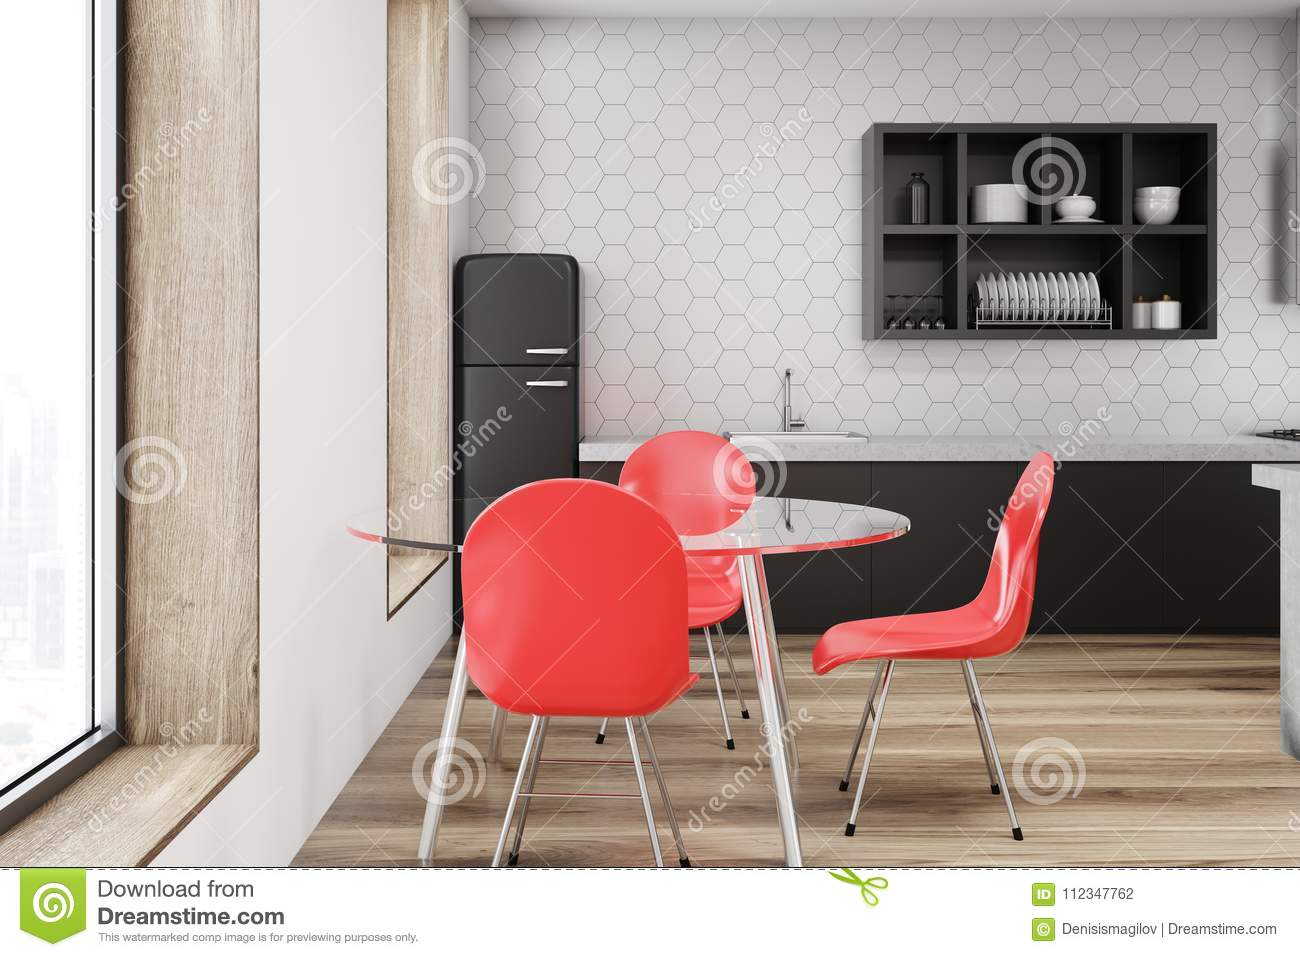 Peachy Red Chair Kitchen Interior White Wall Stock Illustration Unemploymentrelief Wooden Chair Designs For Living Room Unemploymentrelieforg